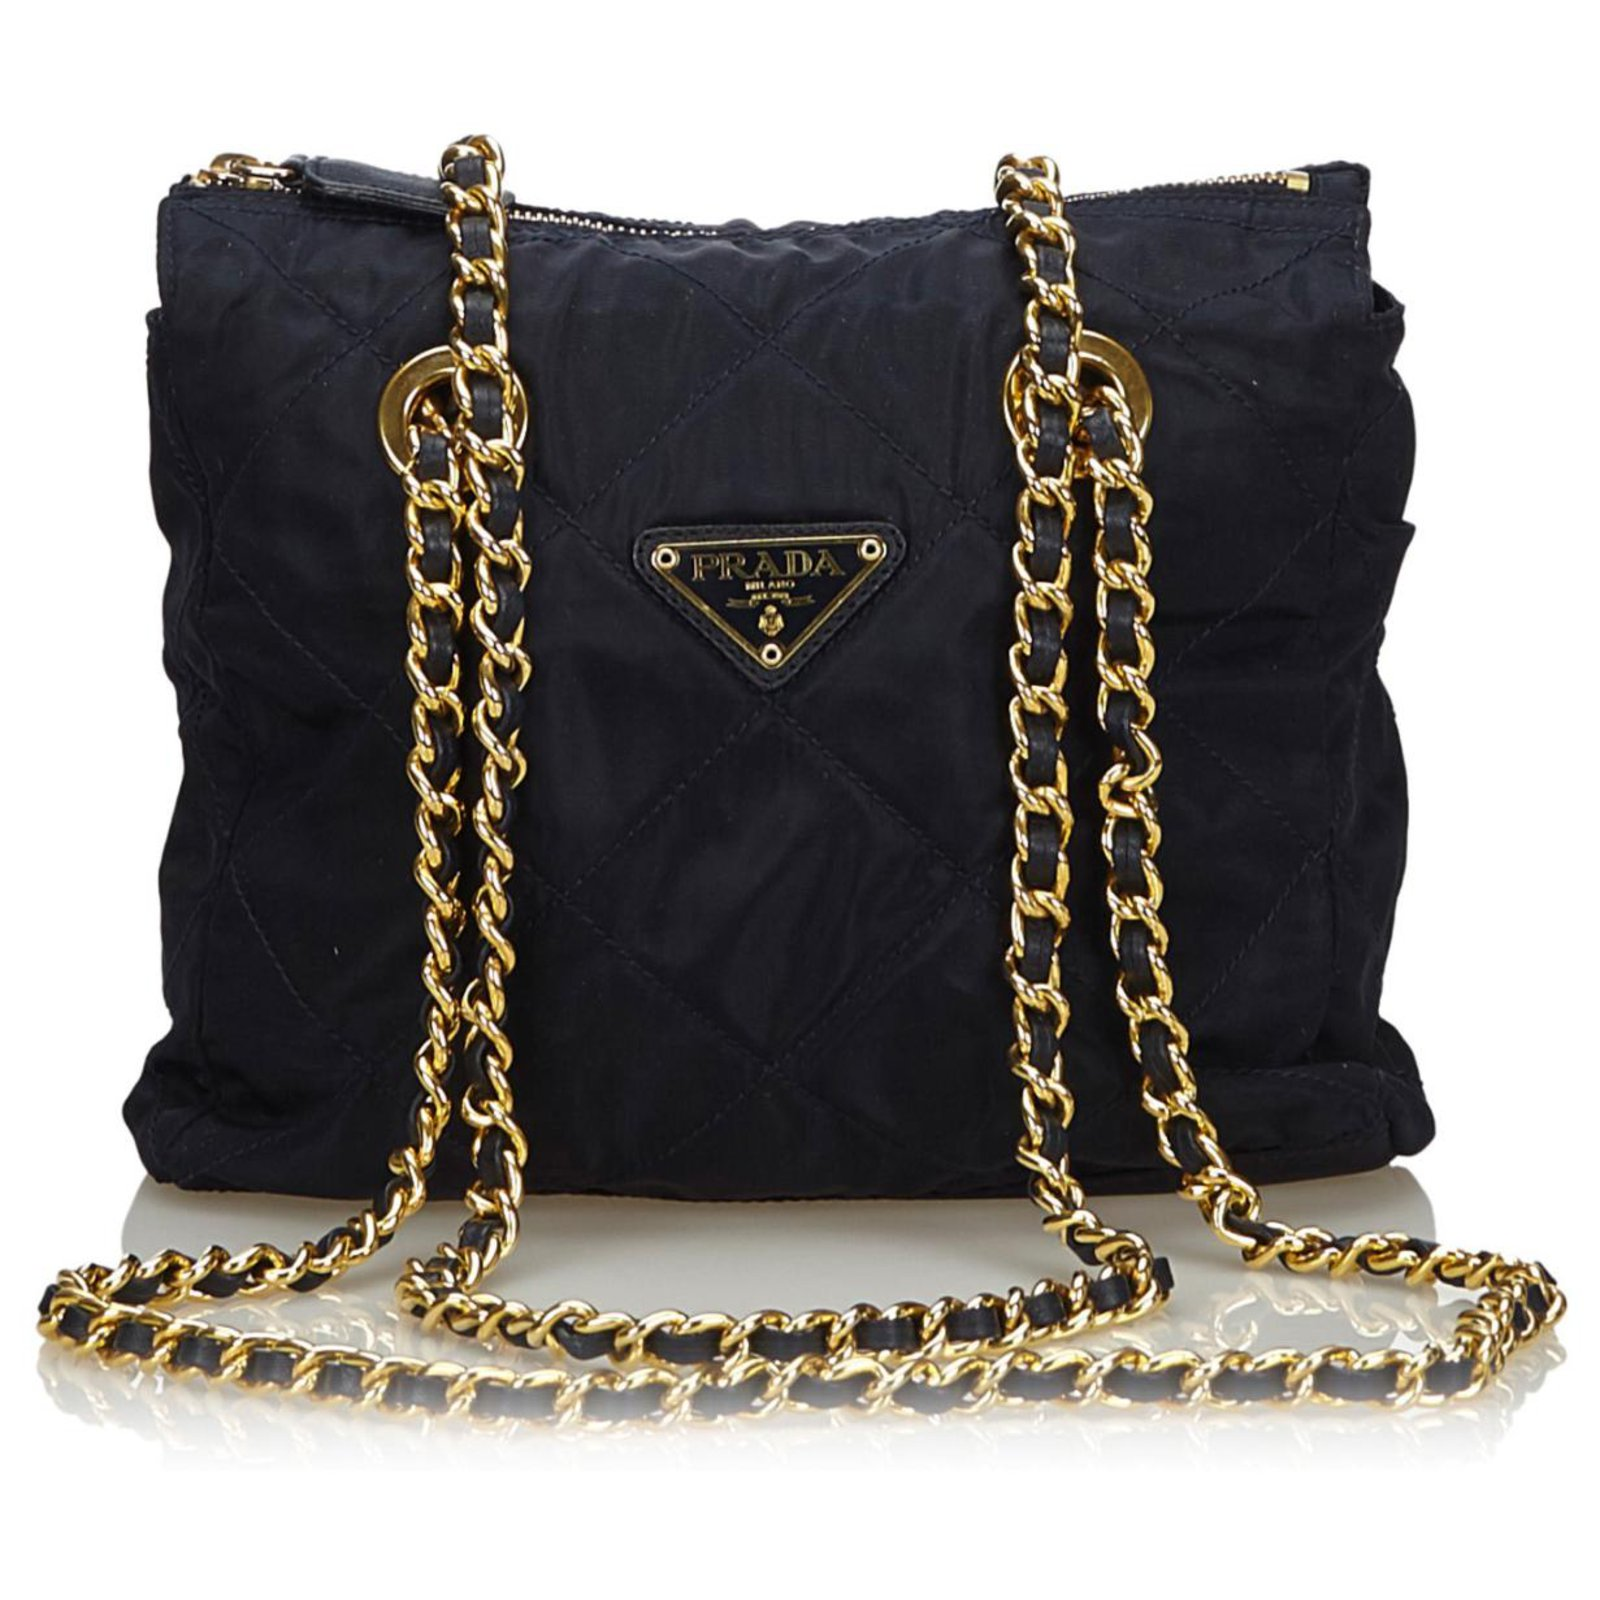 Womens Luxury Nylon and Real Leather Metal Chain Shoulder 3 in 1 Bag